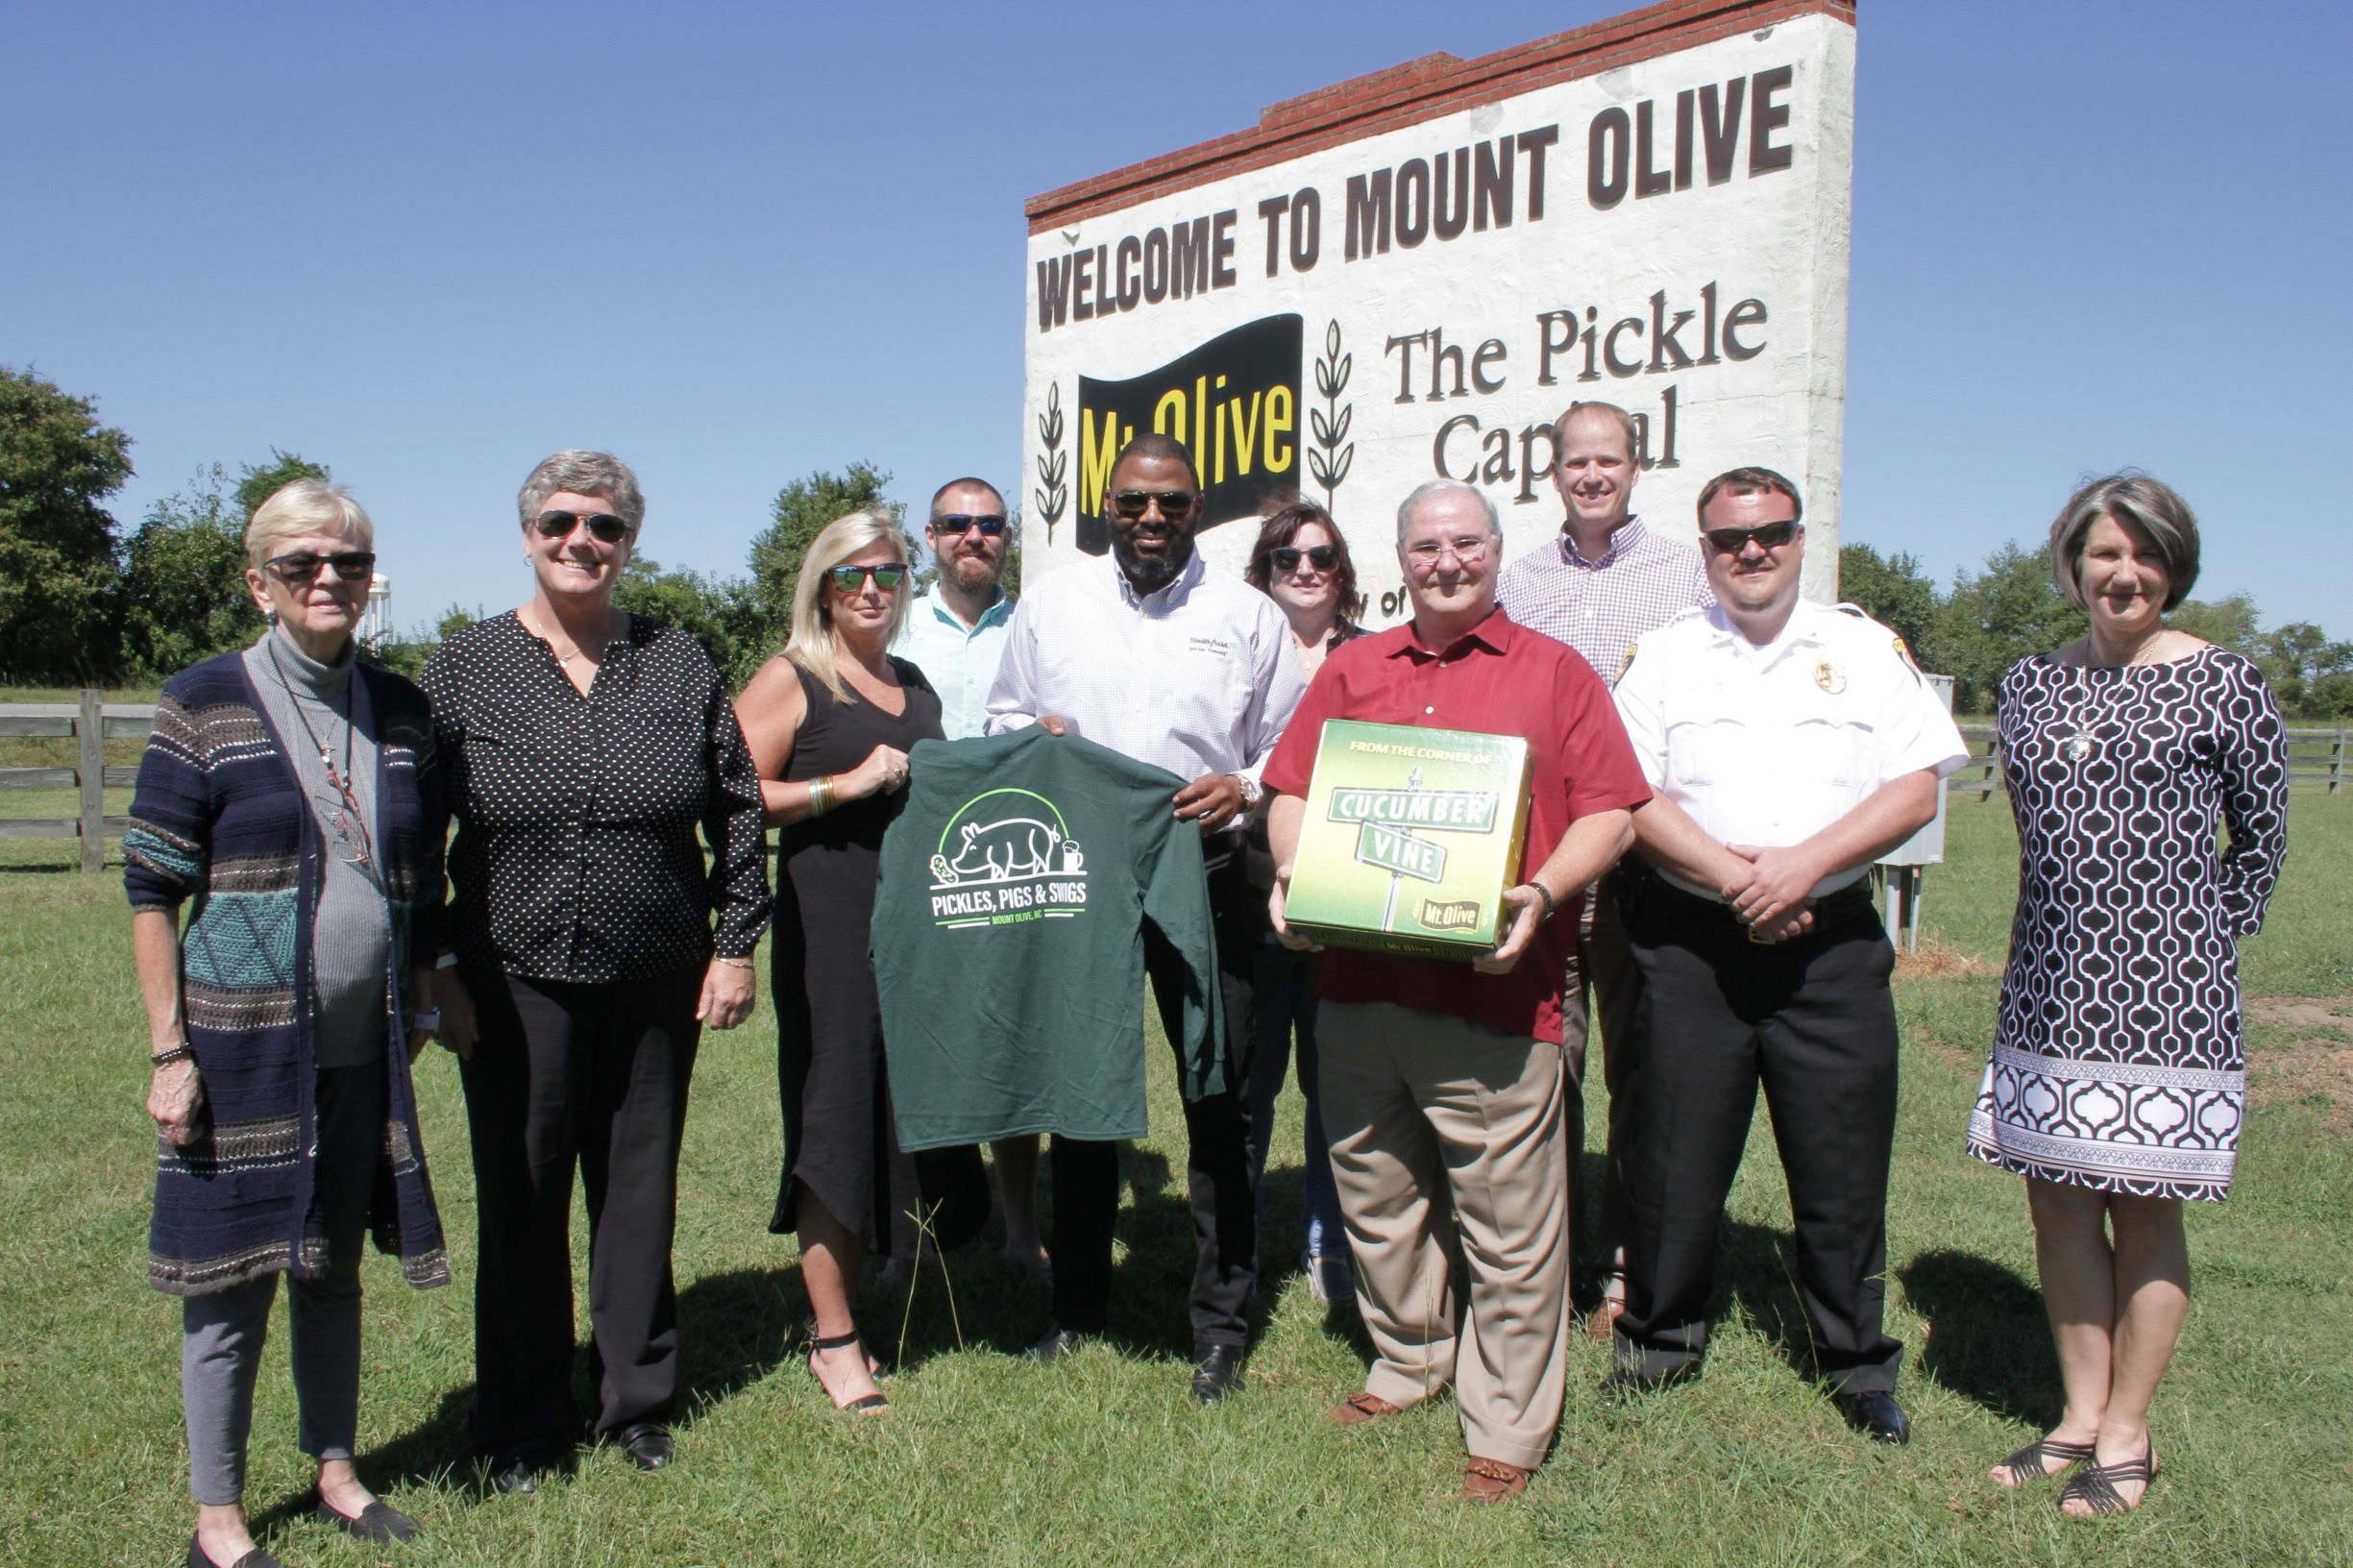 Smithfield Foods Makes Donation For Pickles, Pigs & Swigs